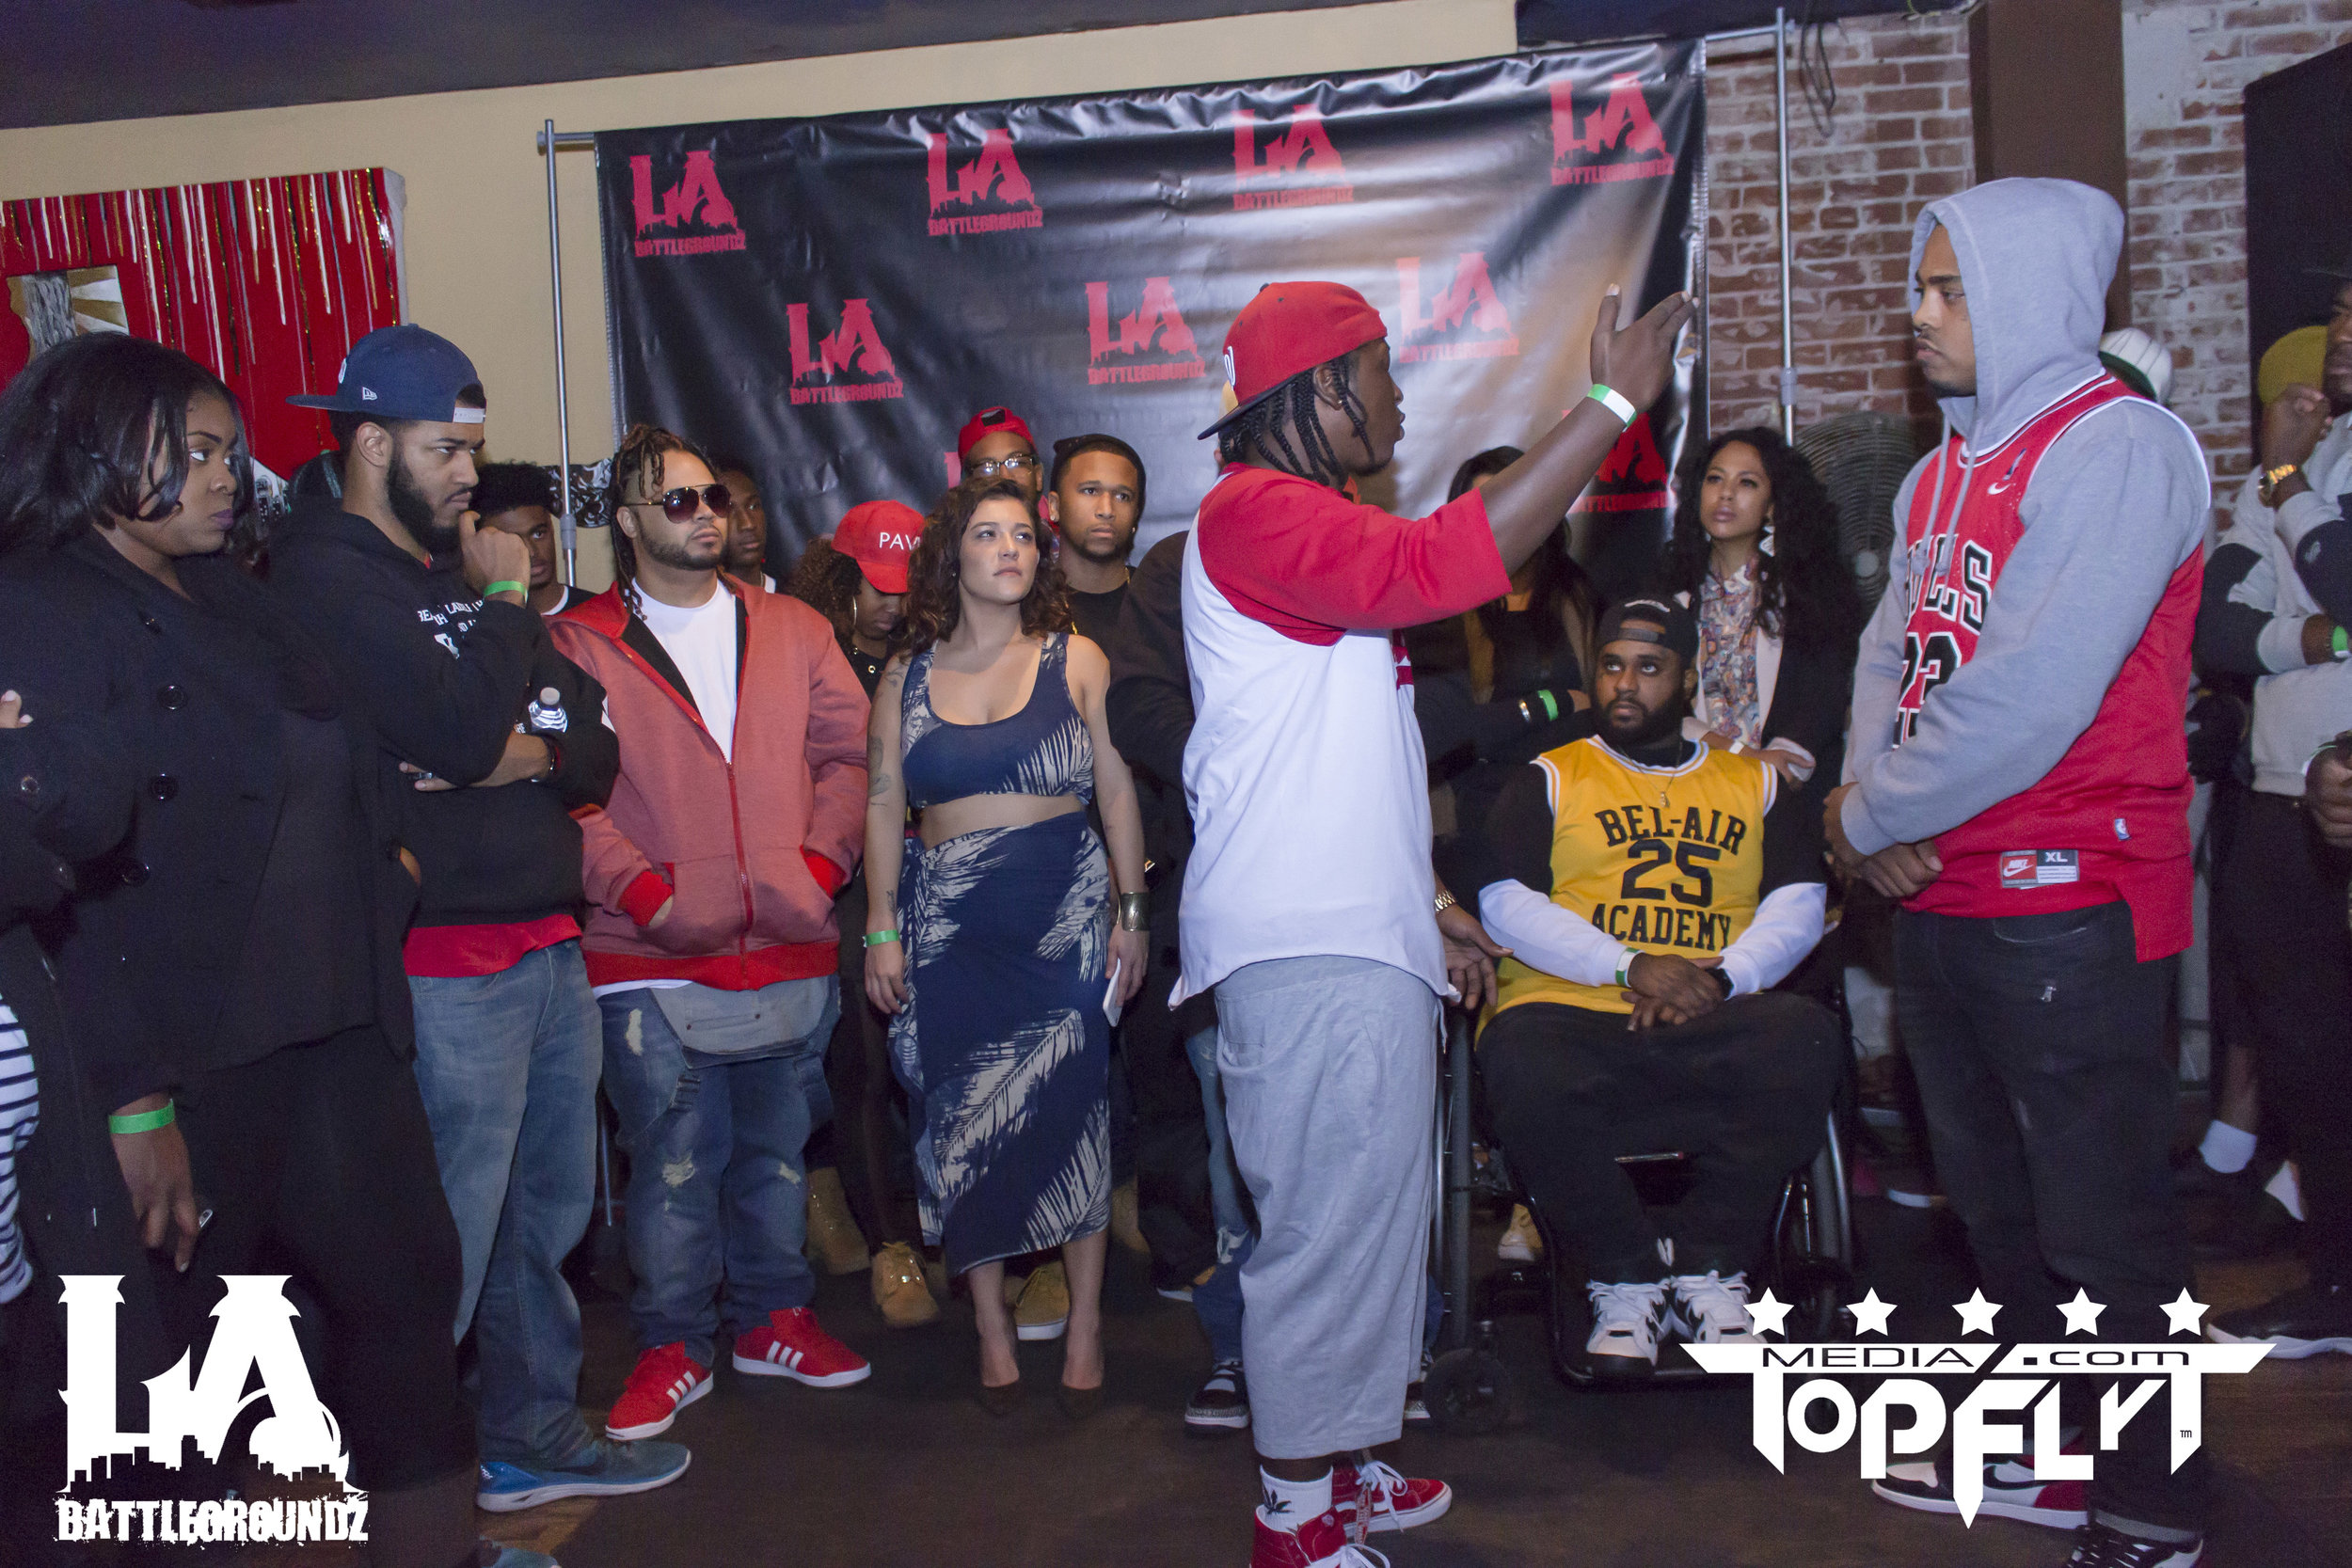 LA Battlegroundz - Decembarfest - The Christening_35.jpg